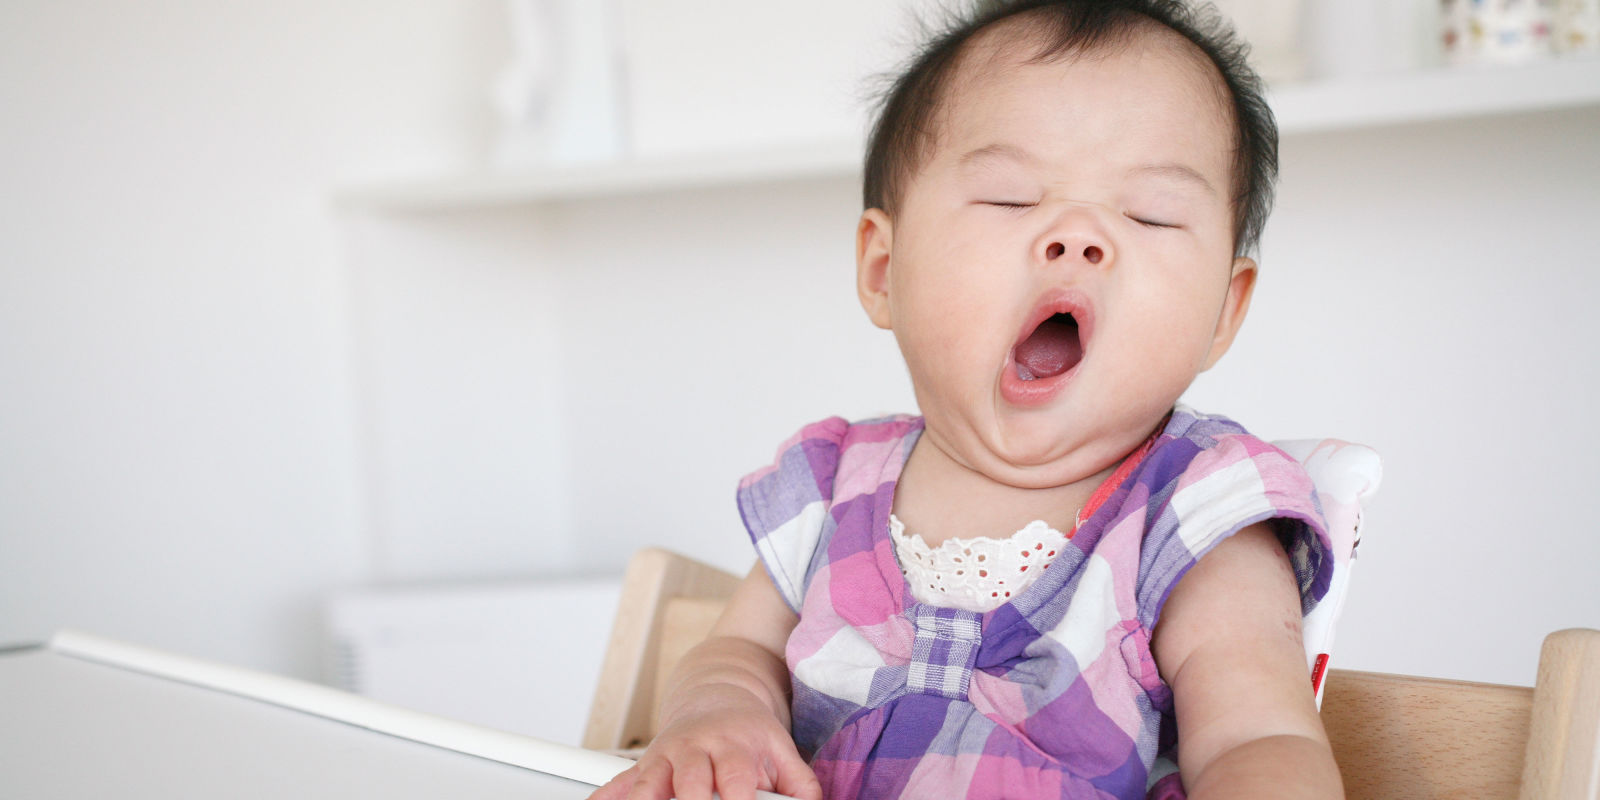 yawning not contagious for children with Excessive yawning in children  of yawning are not well understood excessive yawning is even less understood than normal yawning, particularly in children,.